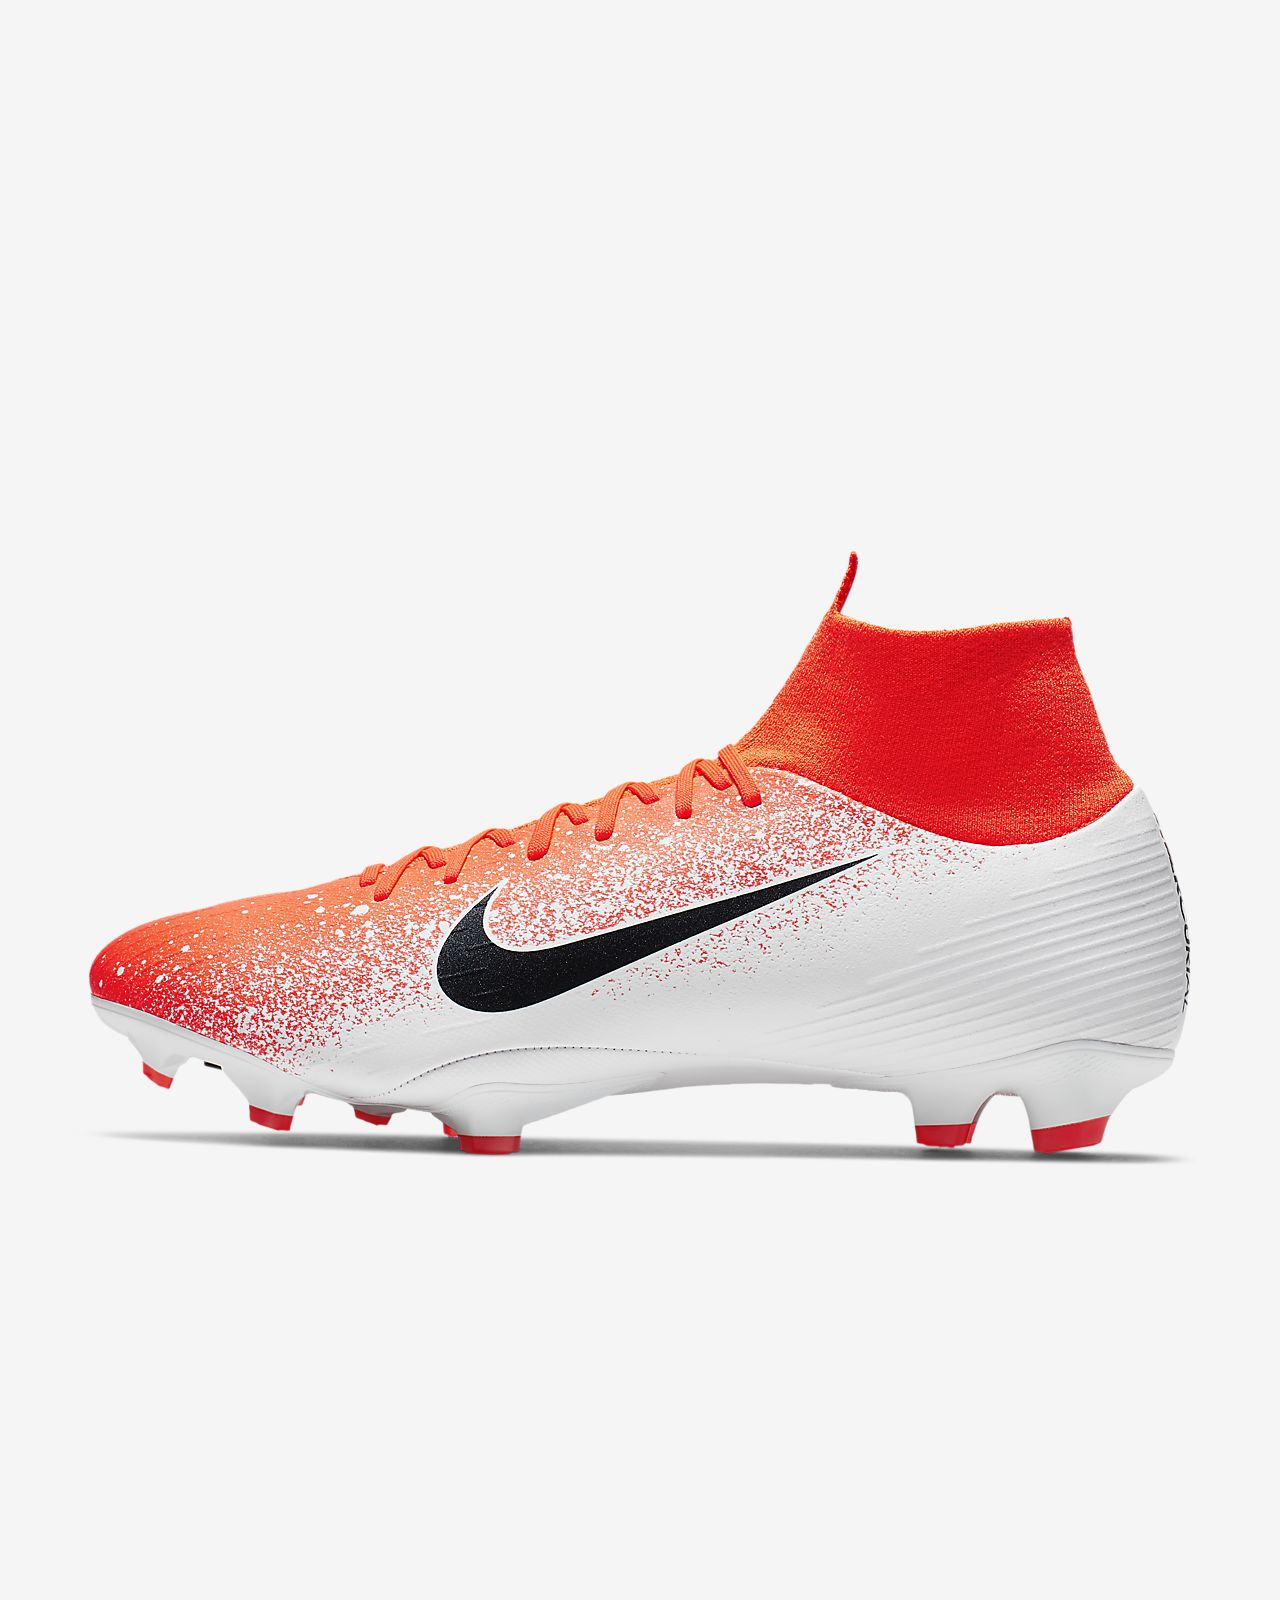 reputable site bbf31 9137c ... Nike Superfly 6 Pro FG Firm-Ground Soccer Cleat